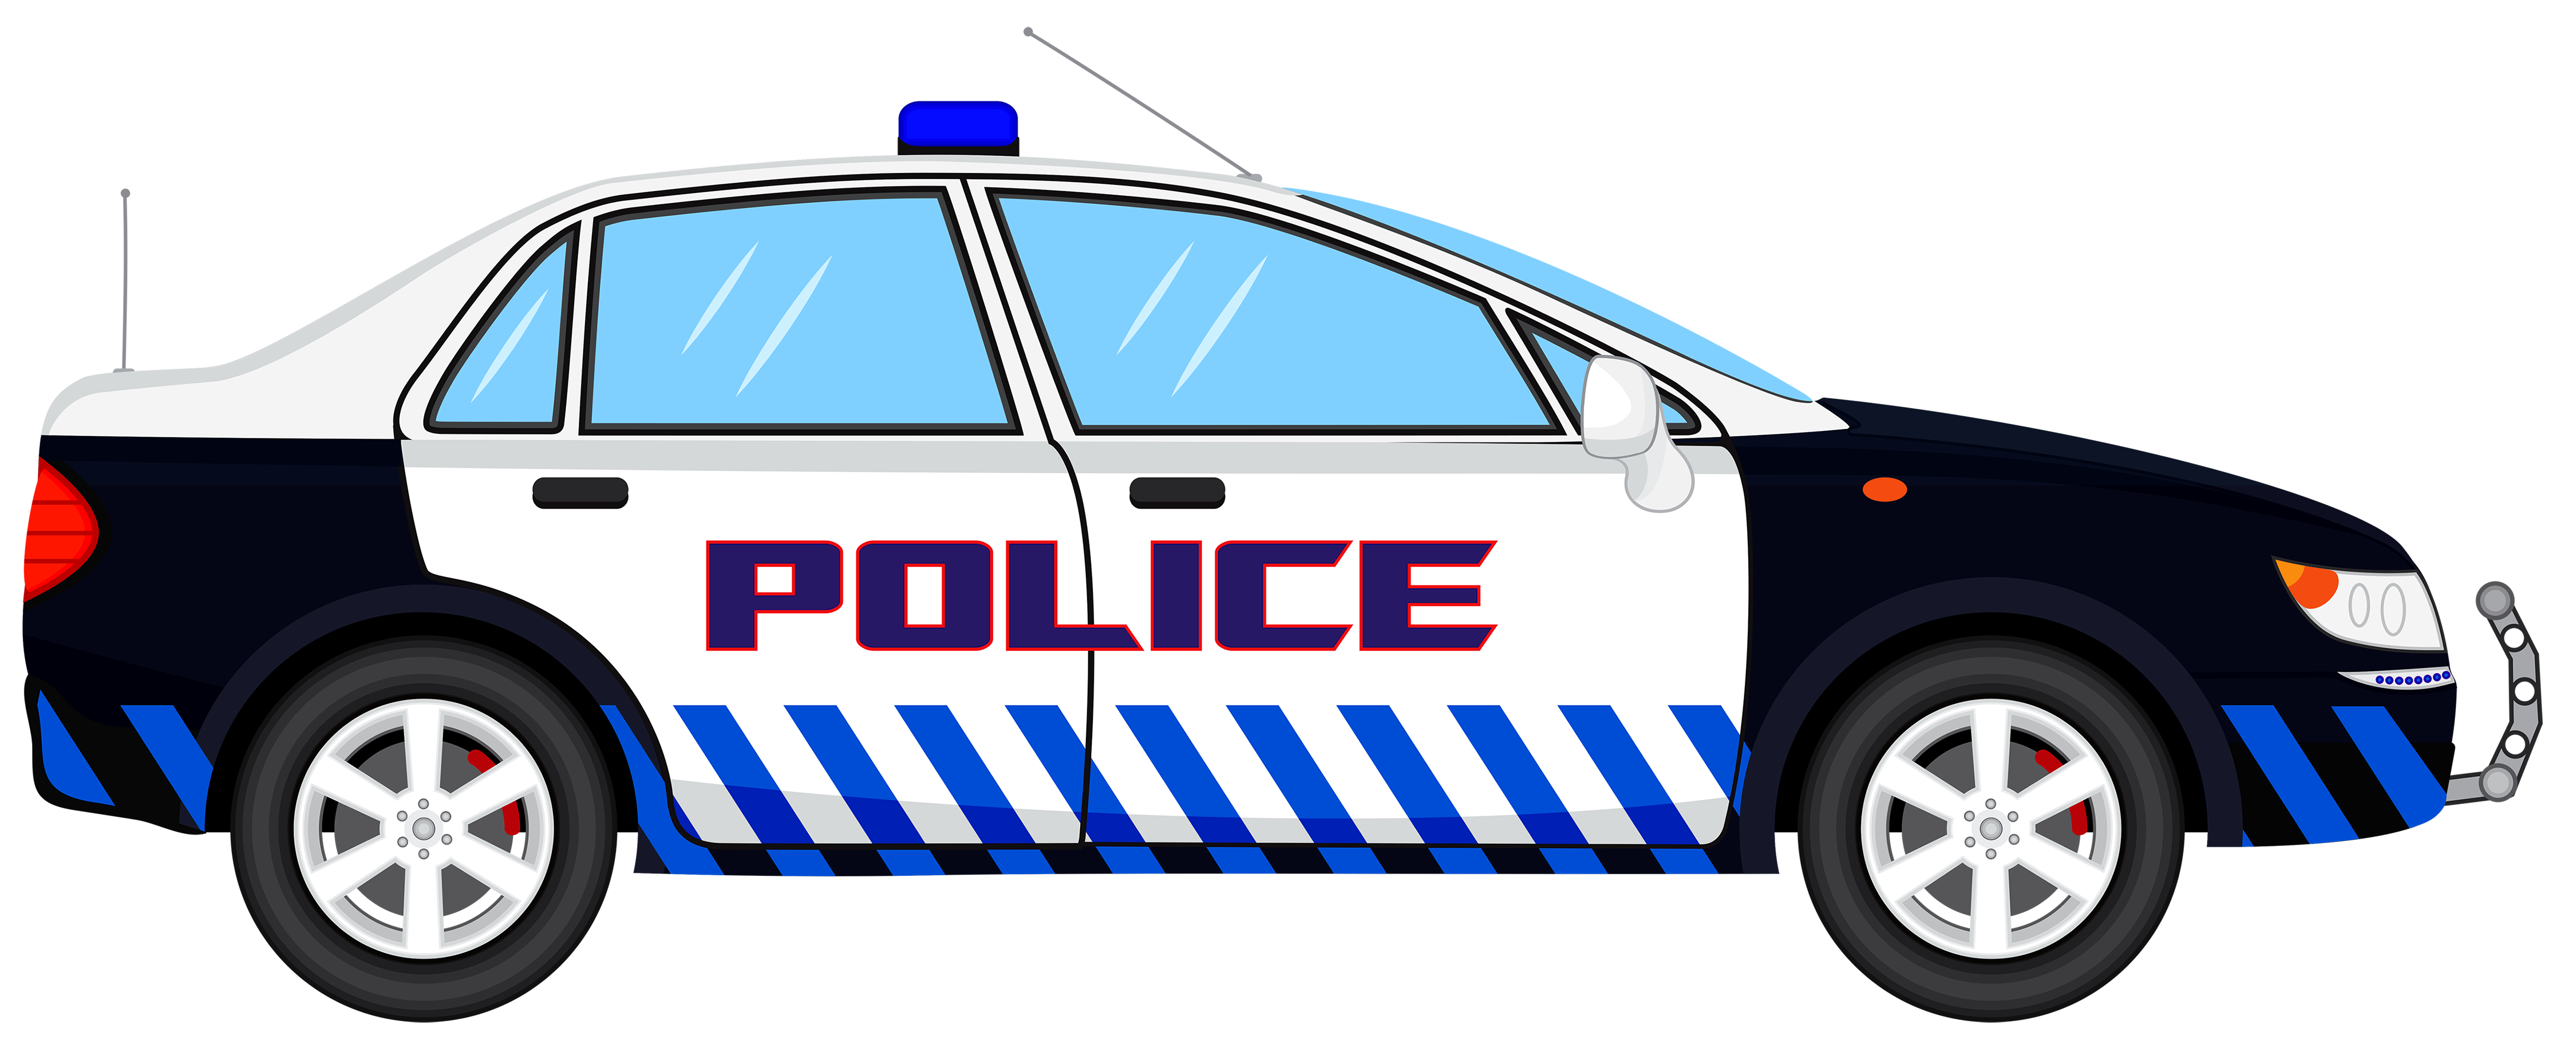 Police Car Outline | Free download best Police Car Outline on ... png black and white